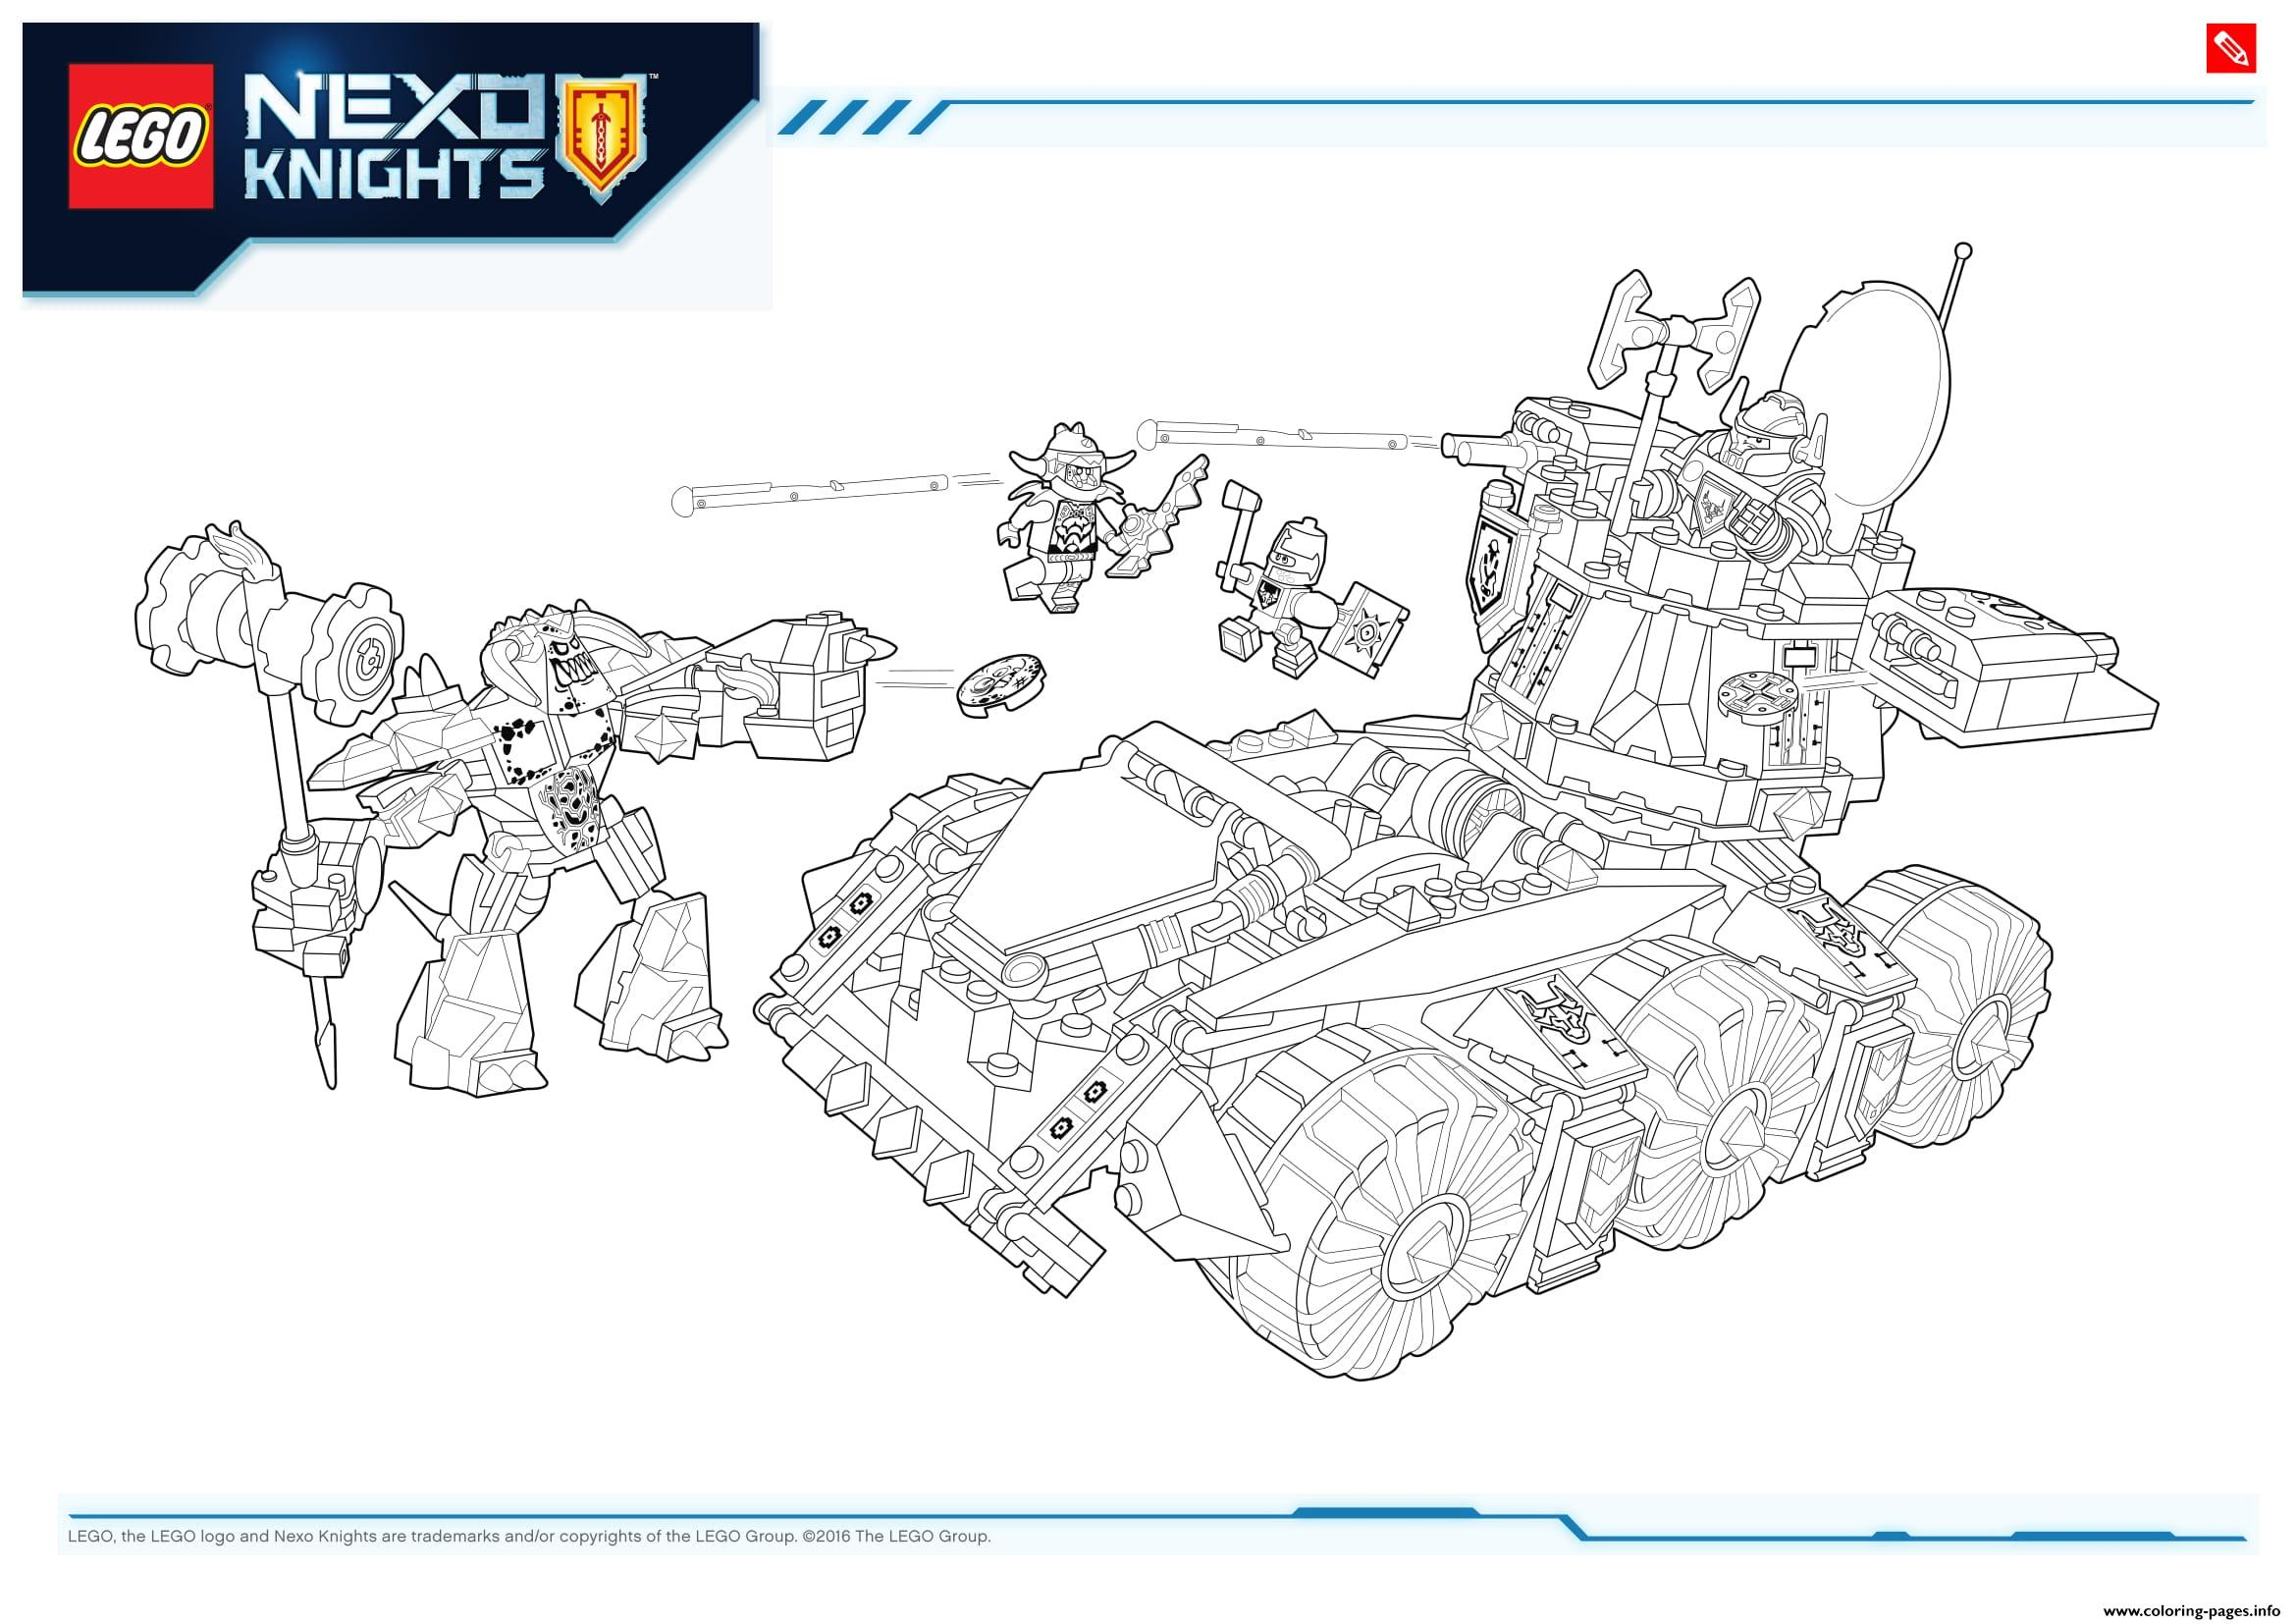 Lego NEXO KNIGHTS Products 2 Coloring